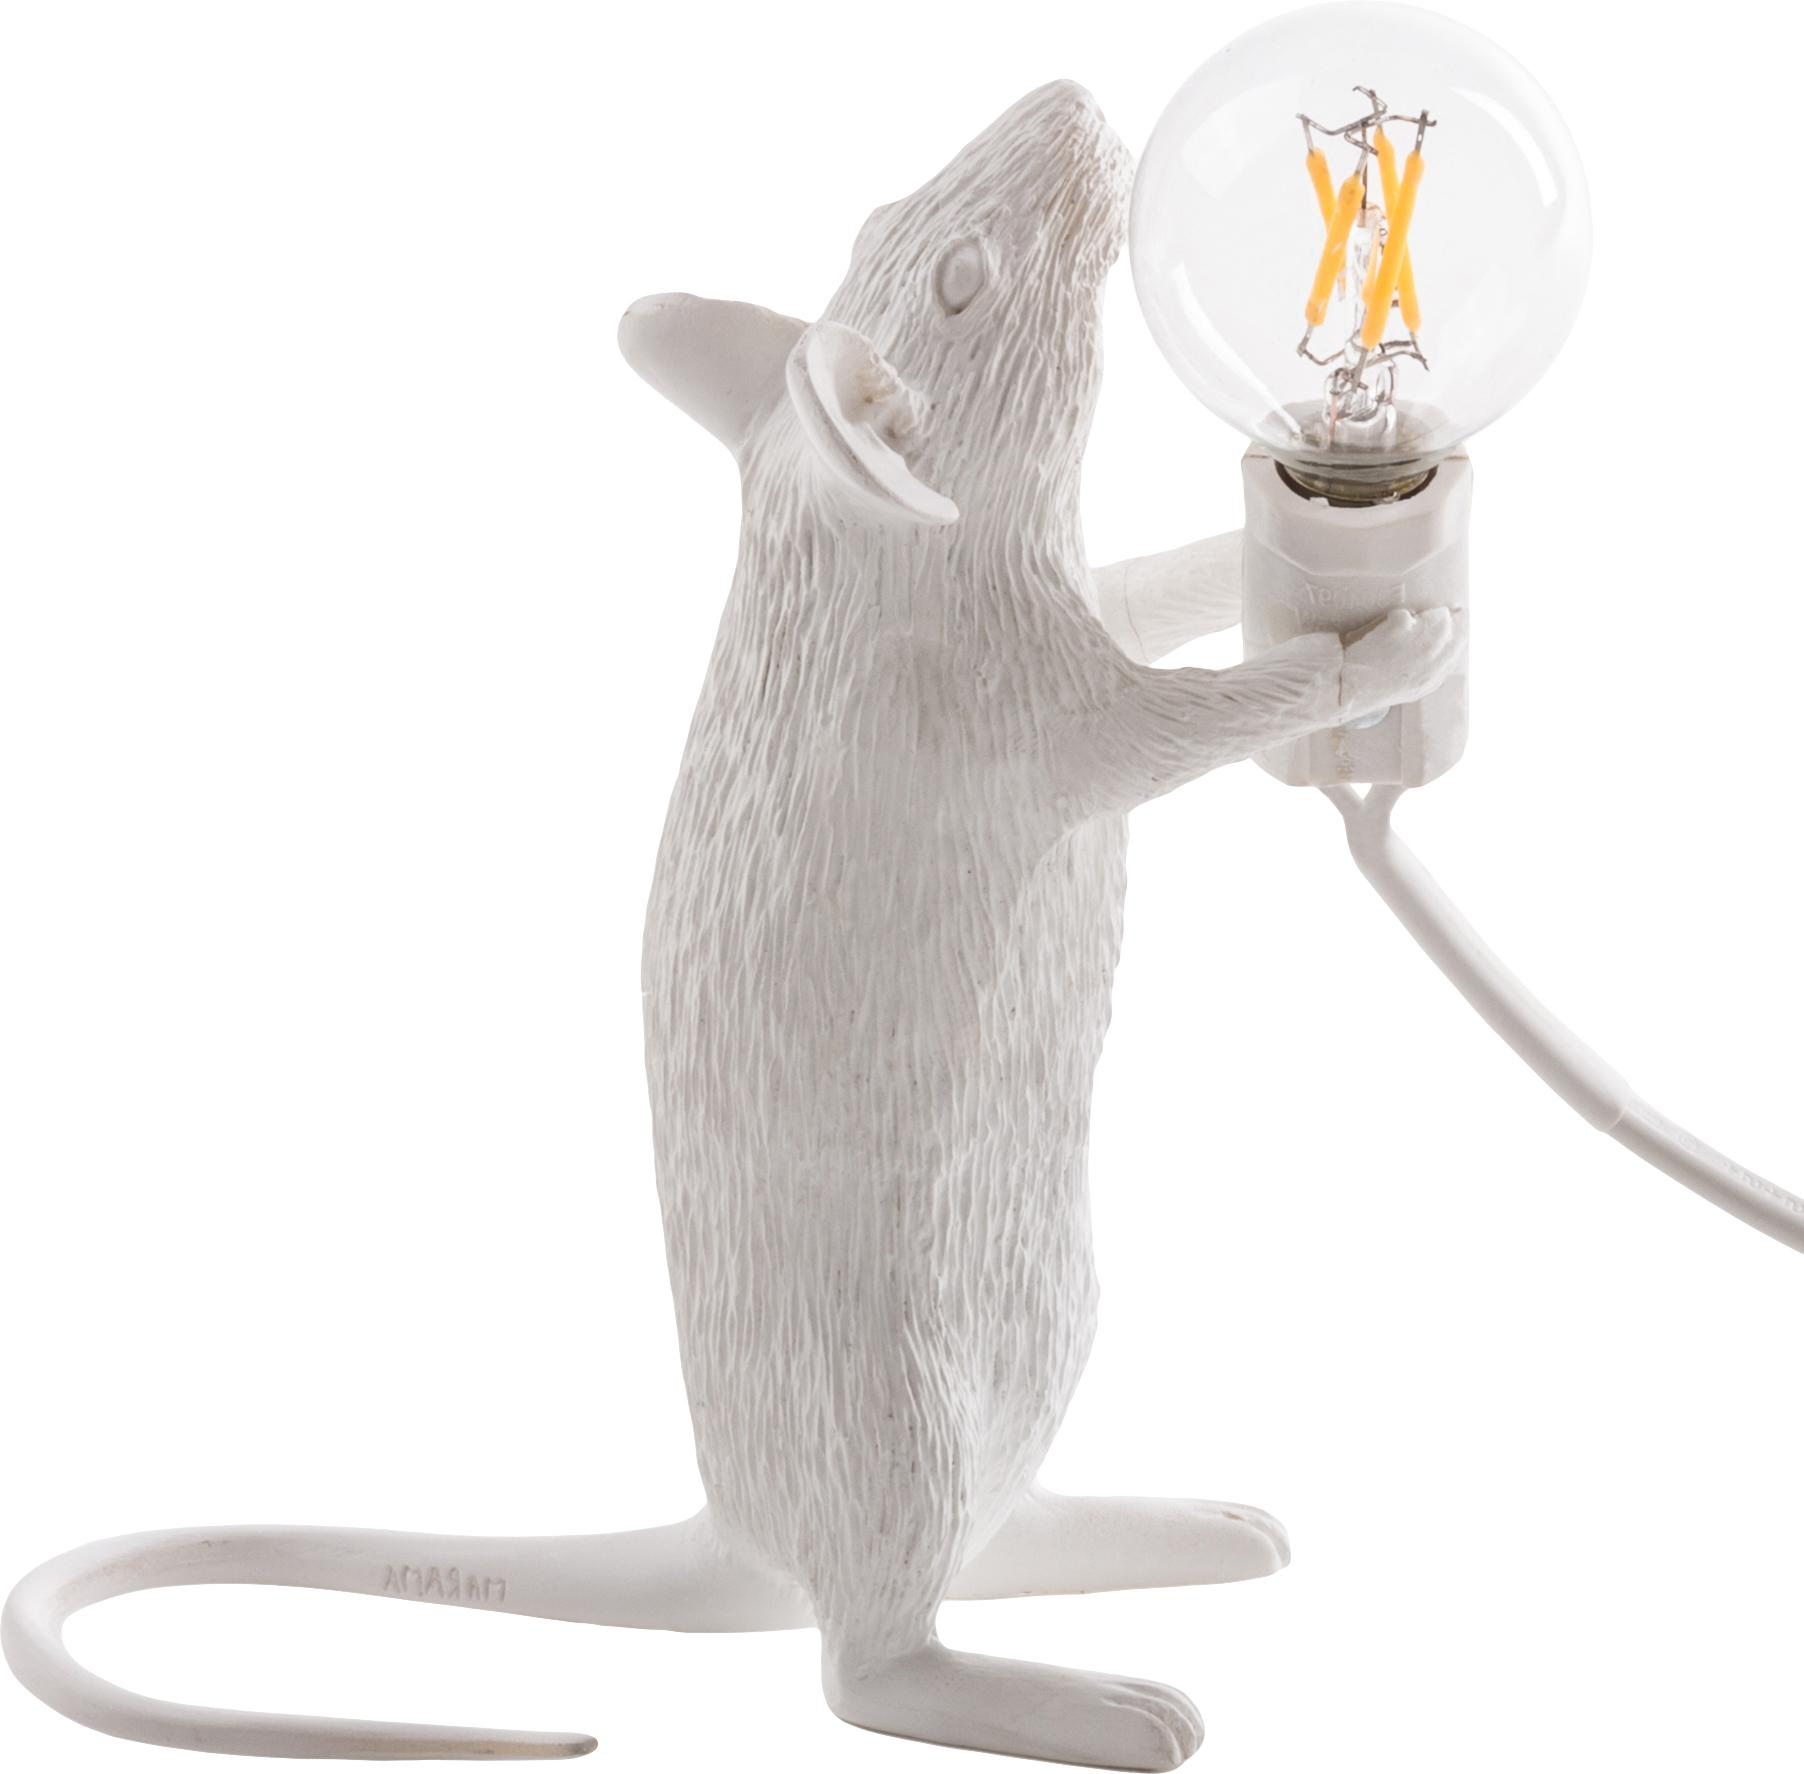 Design-Tischlampe Mouse, Weiss, 6 x 15 cm